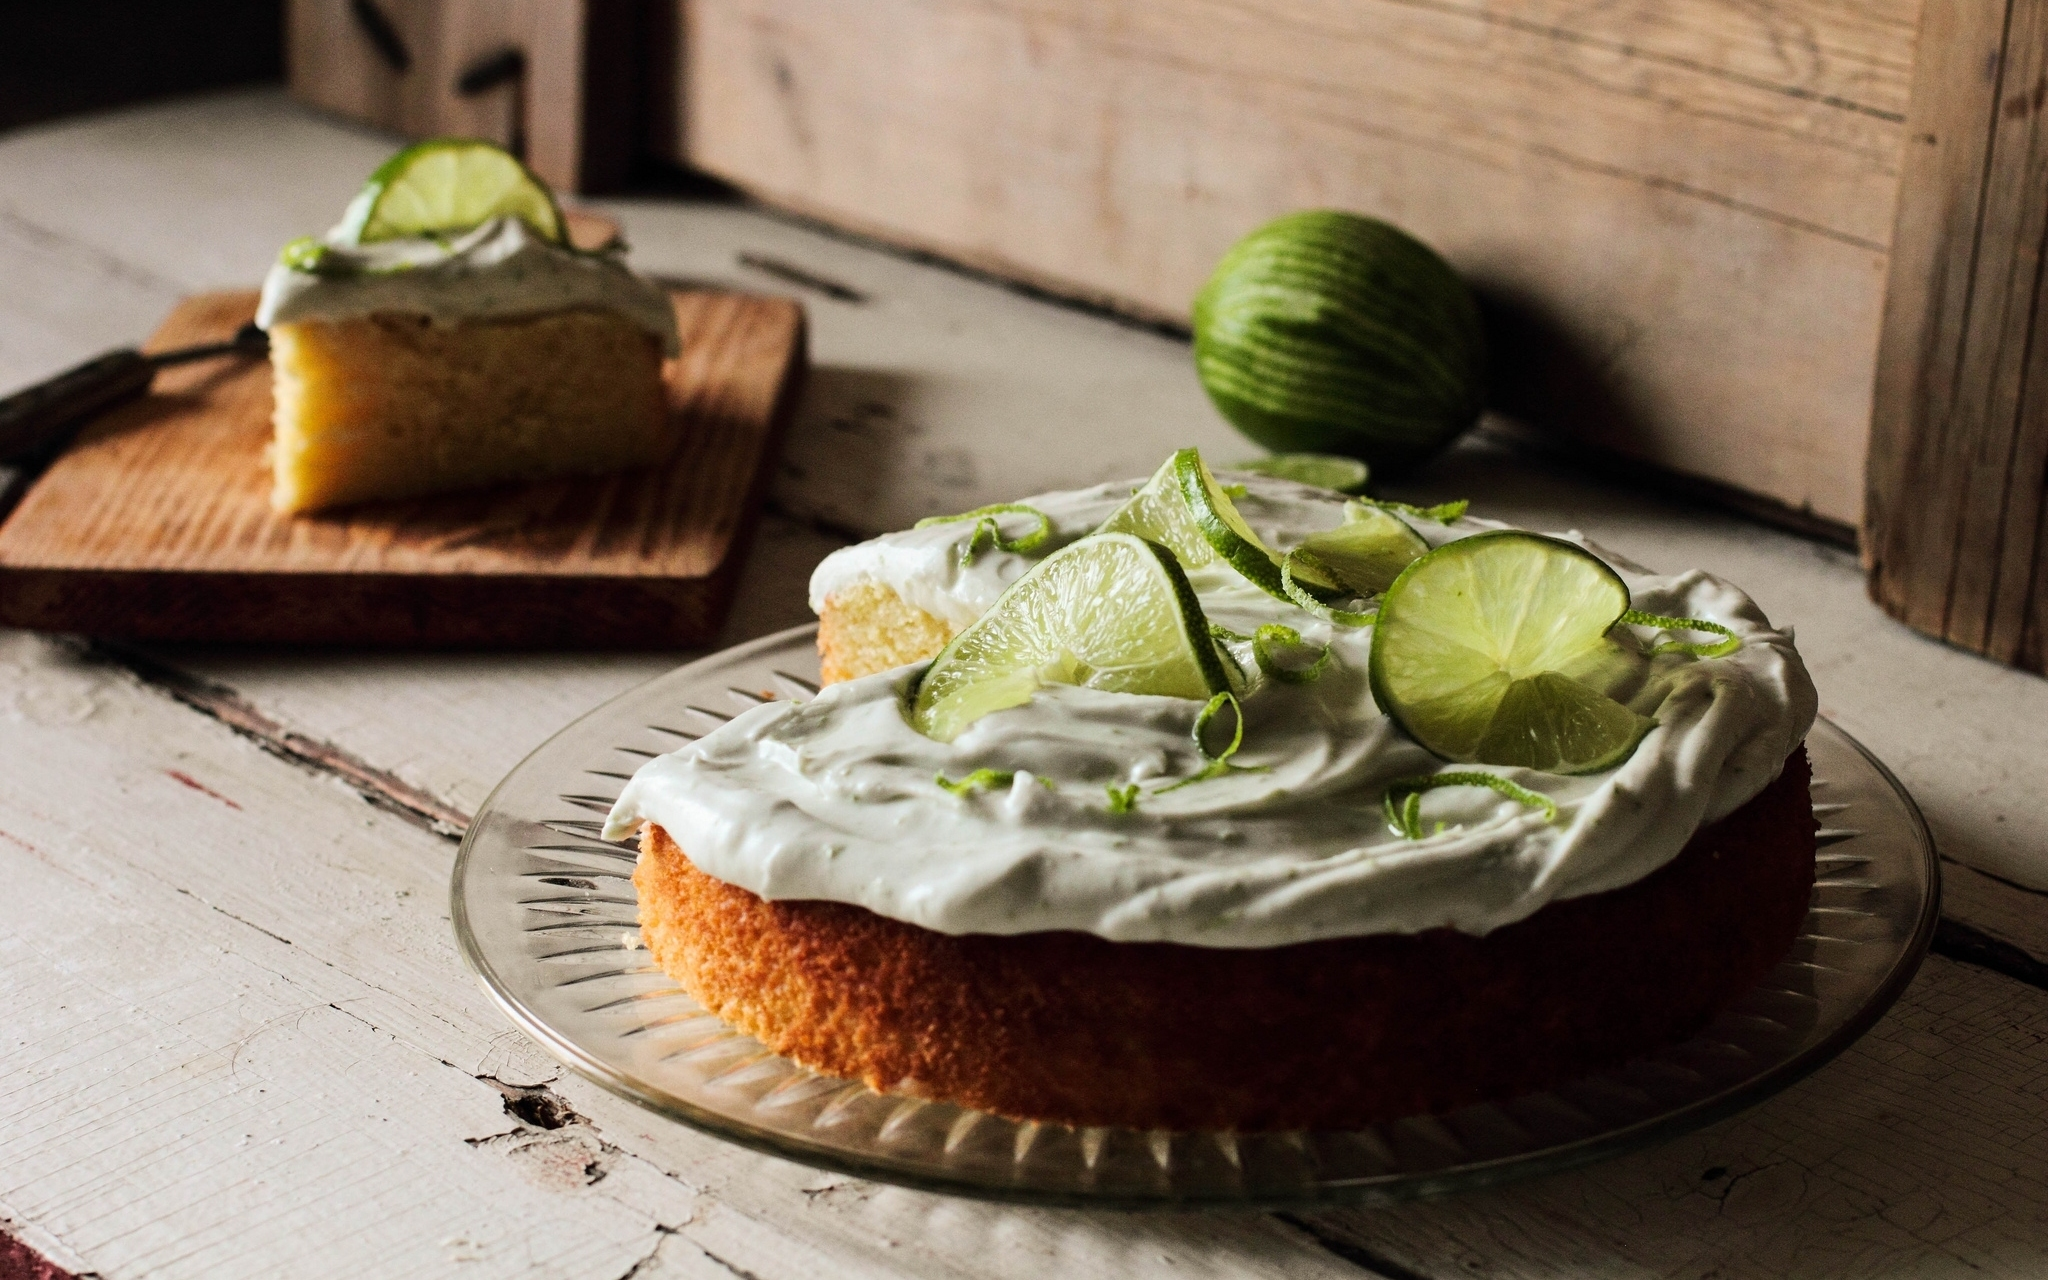 71920 download wallpaper Food, Lime, Cake, Cream screensavers and pictures for free